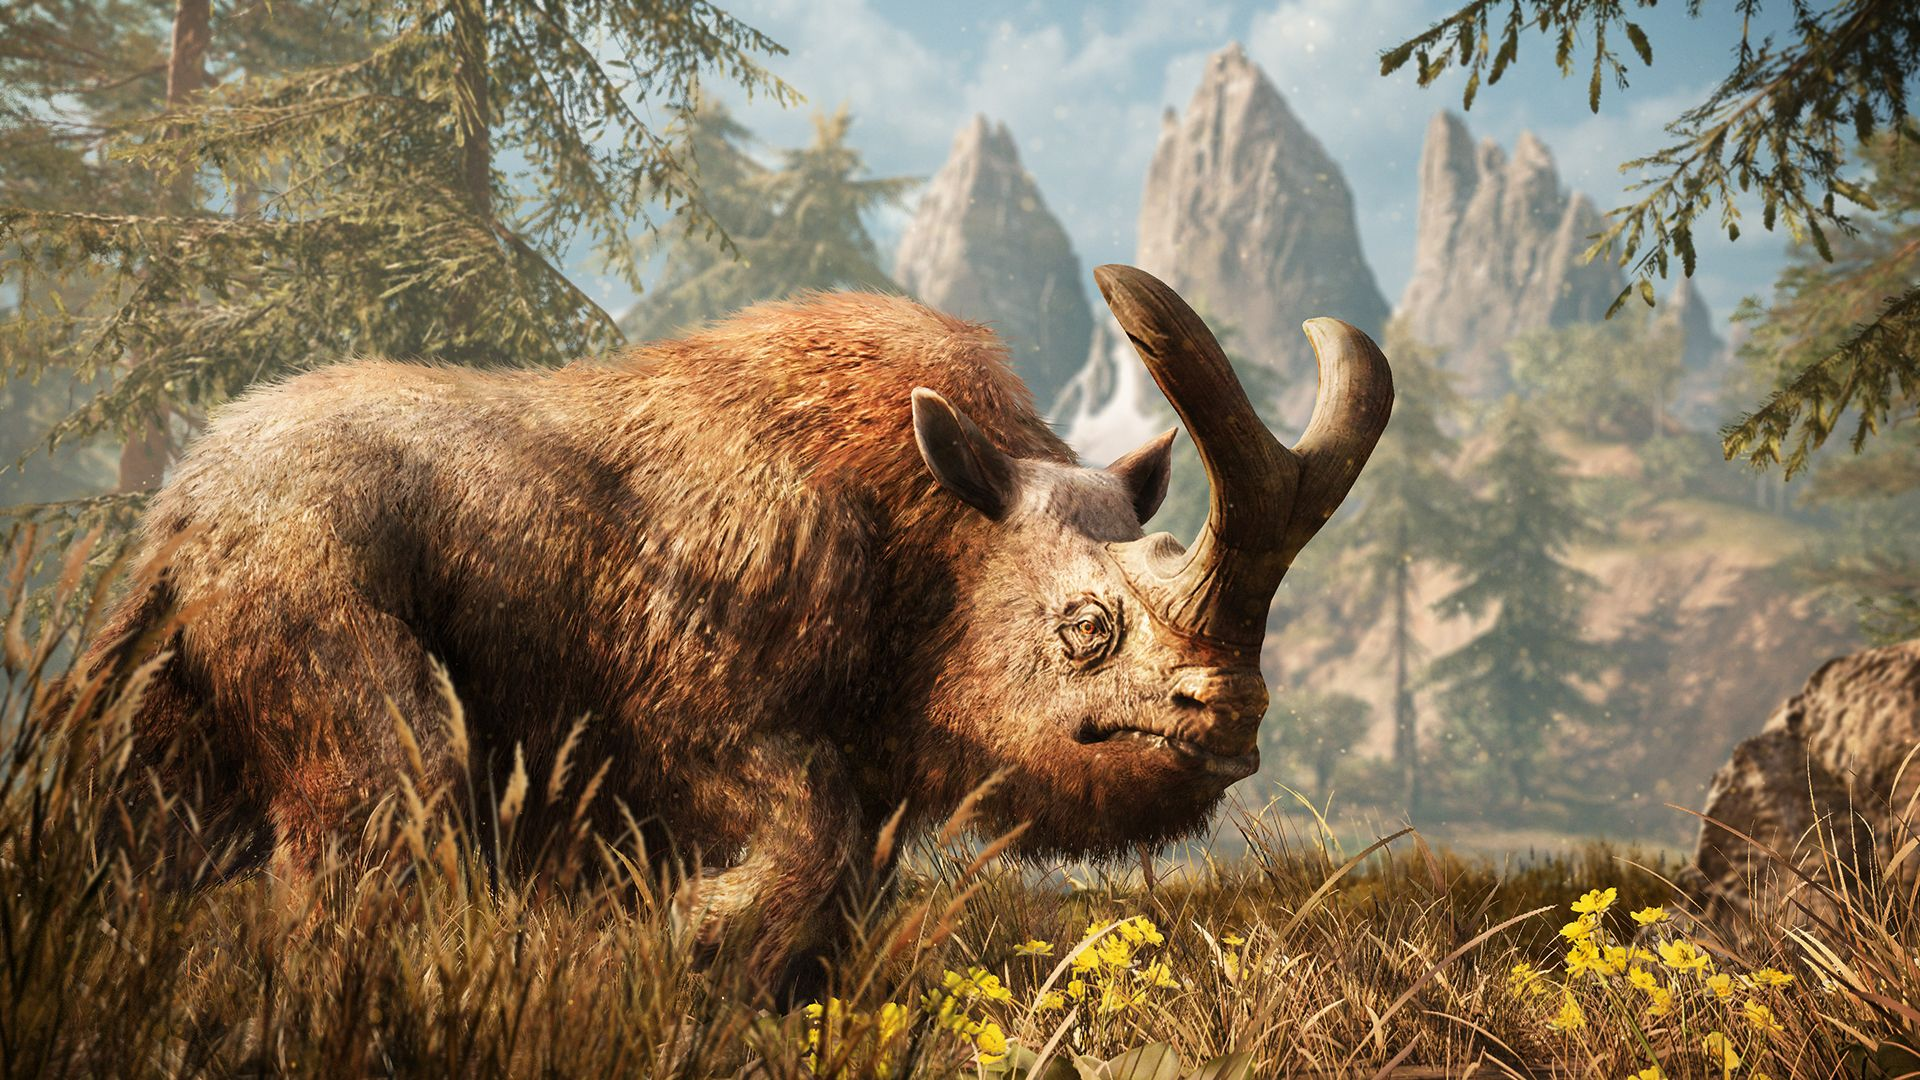 Wooly Brontothere Far Cry Primal Rare Animals Mythological Creatures